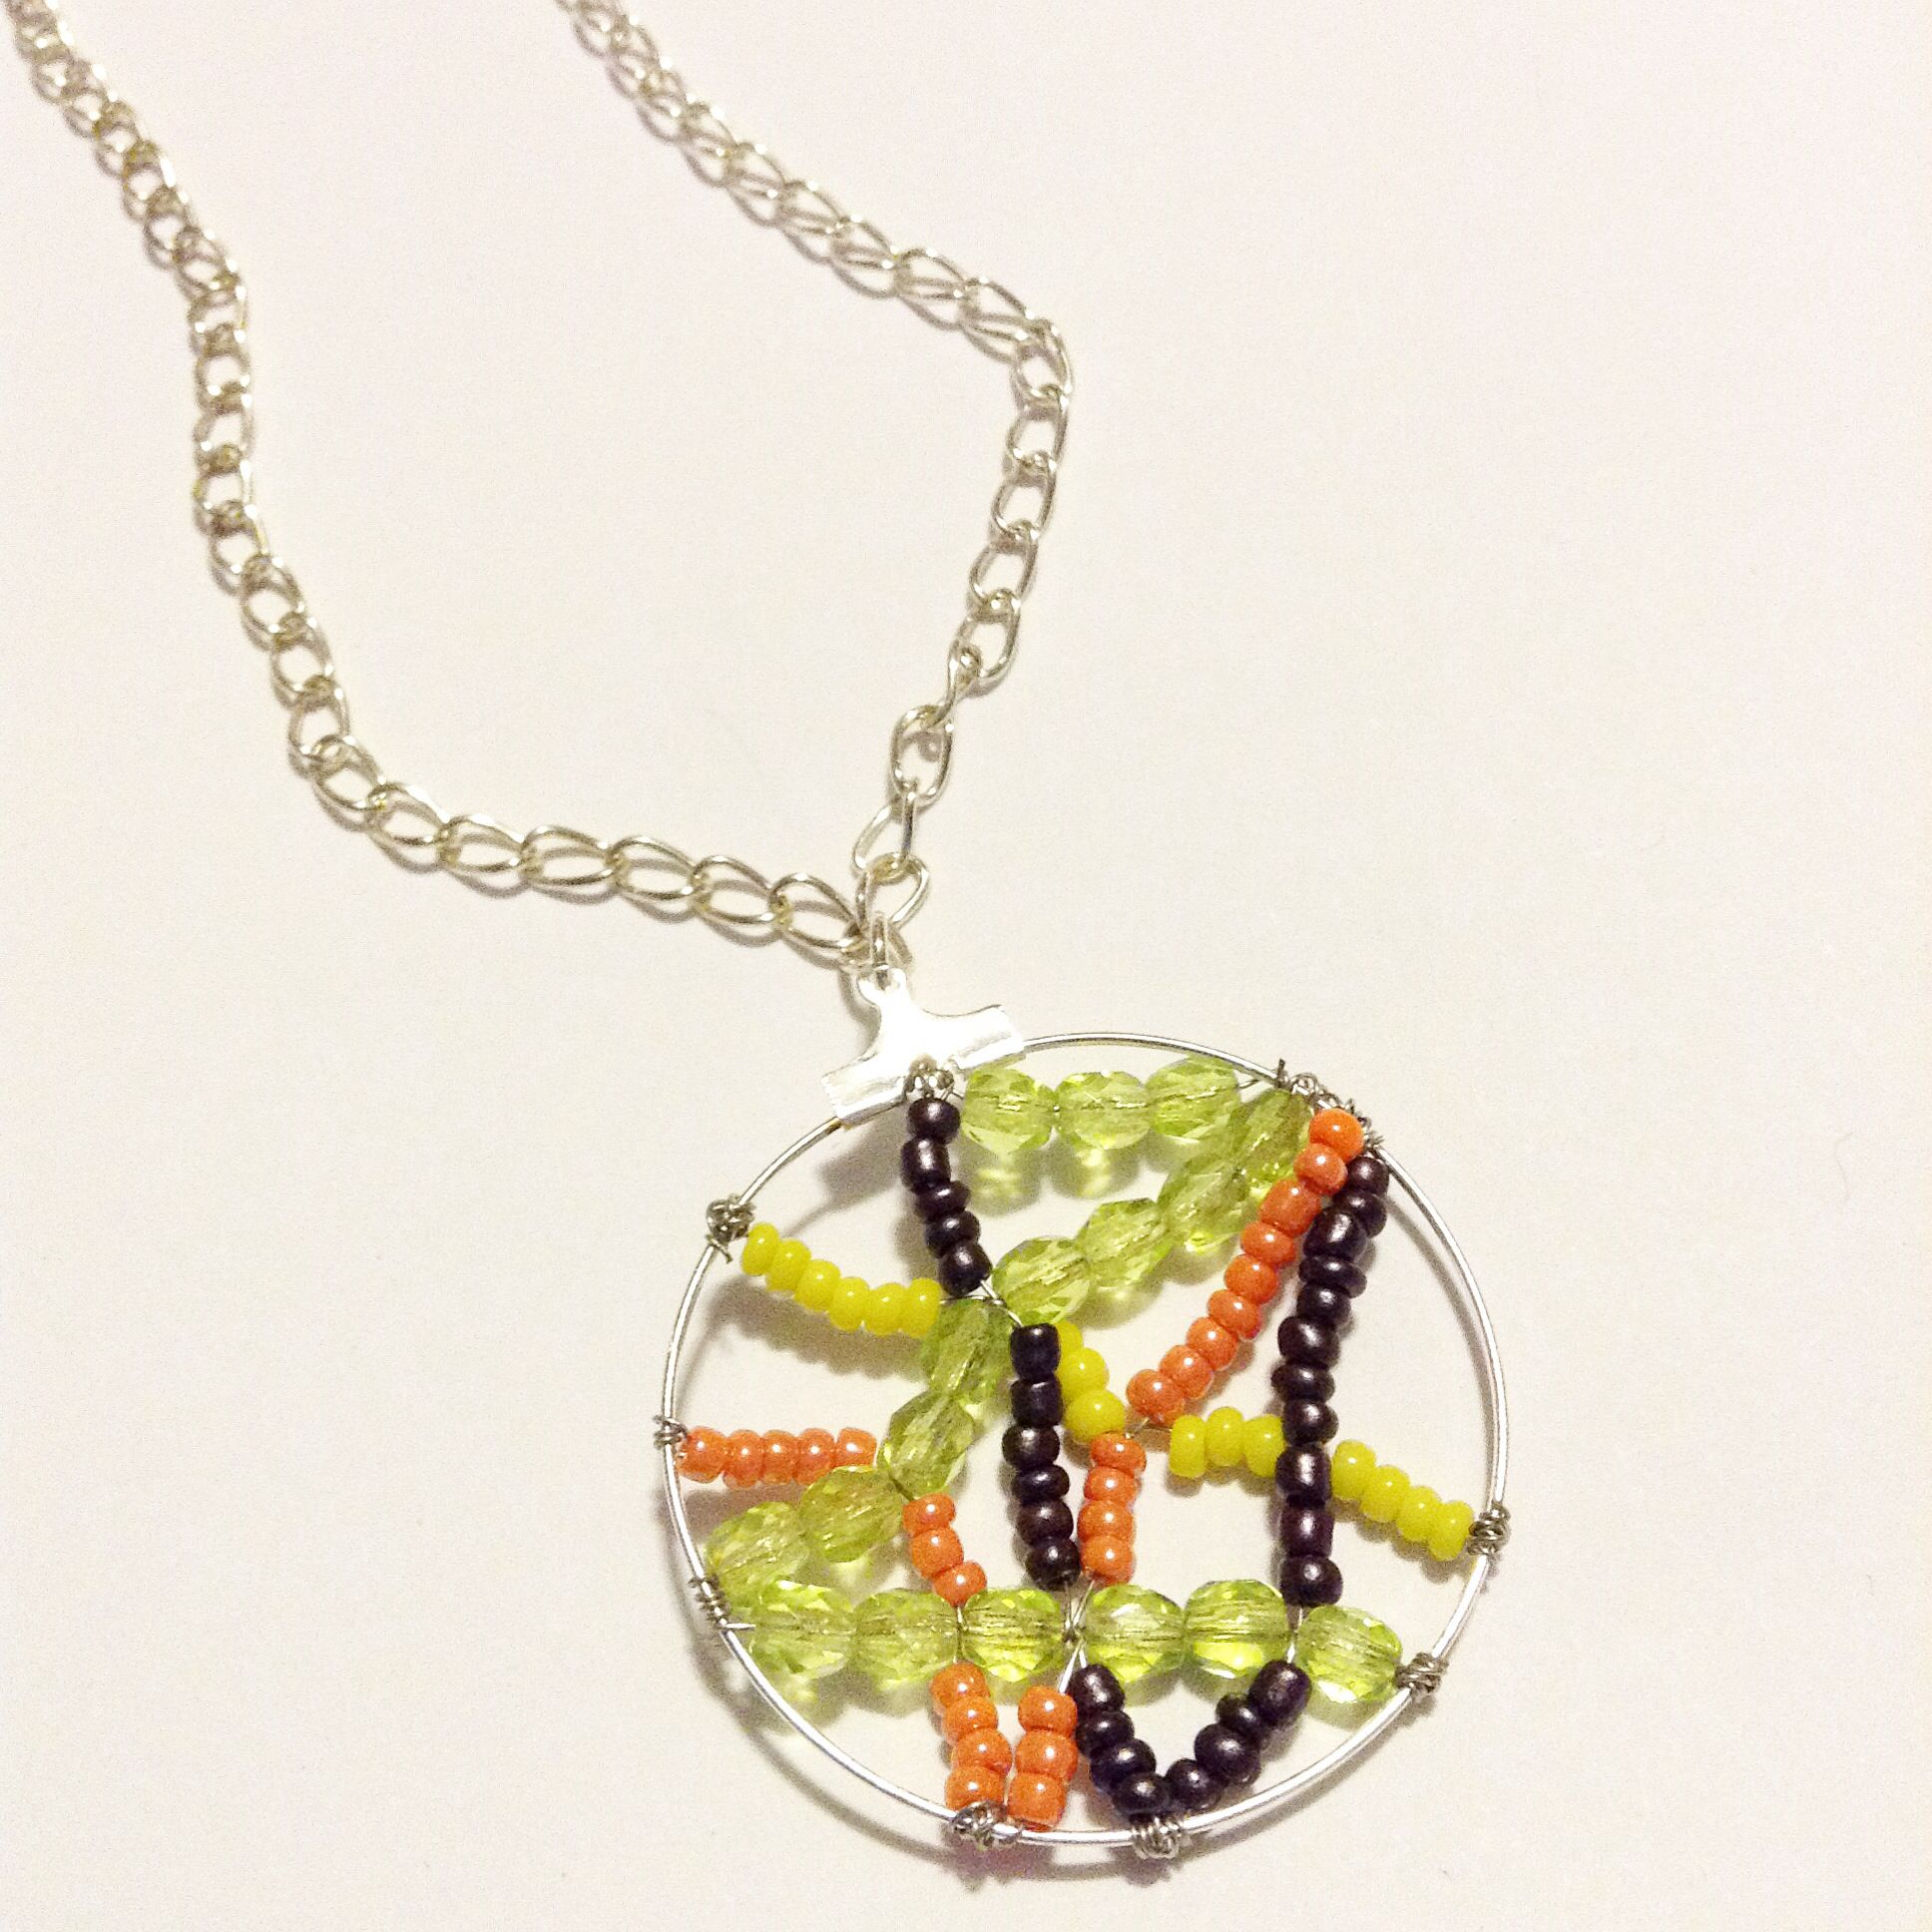 charm necklace wobisobi diy